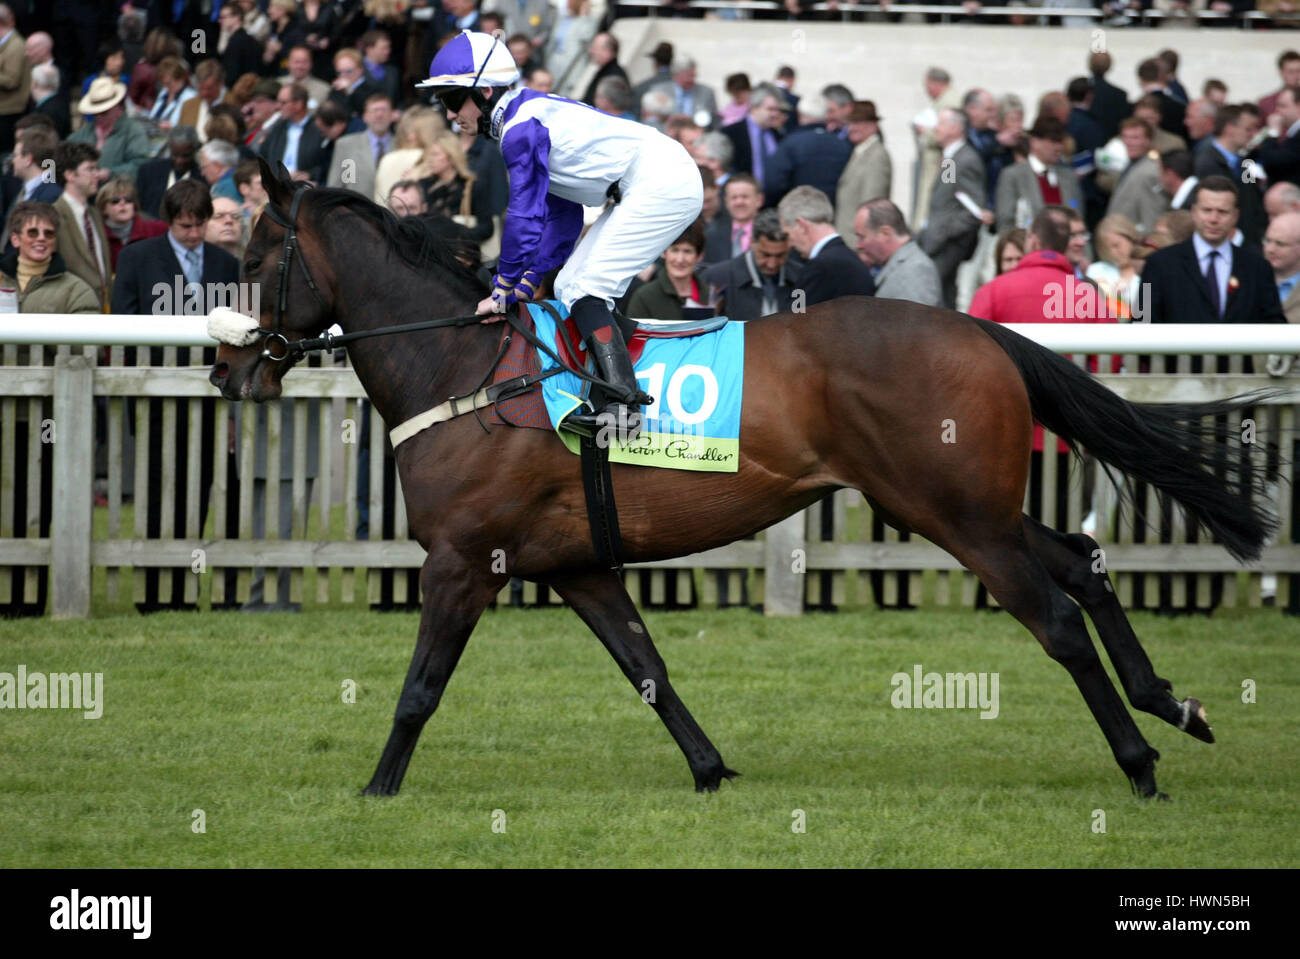 SMOKIN BEAU RIDDEN BY M.HENRY NEWMARKET RACECOURSE NEWMARKET 04 May 2002 - Stock Image